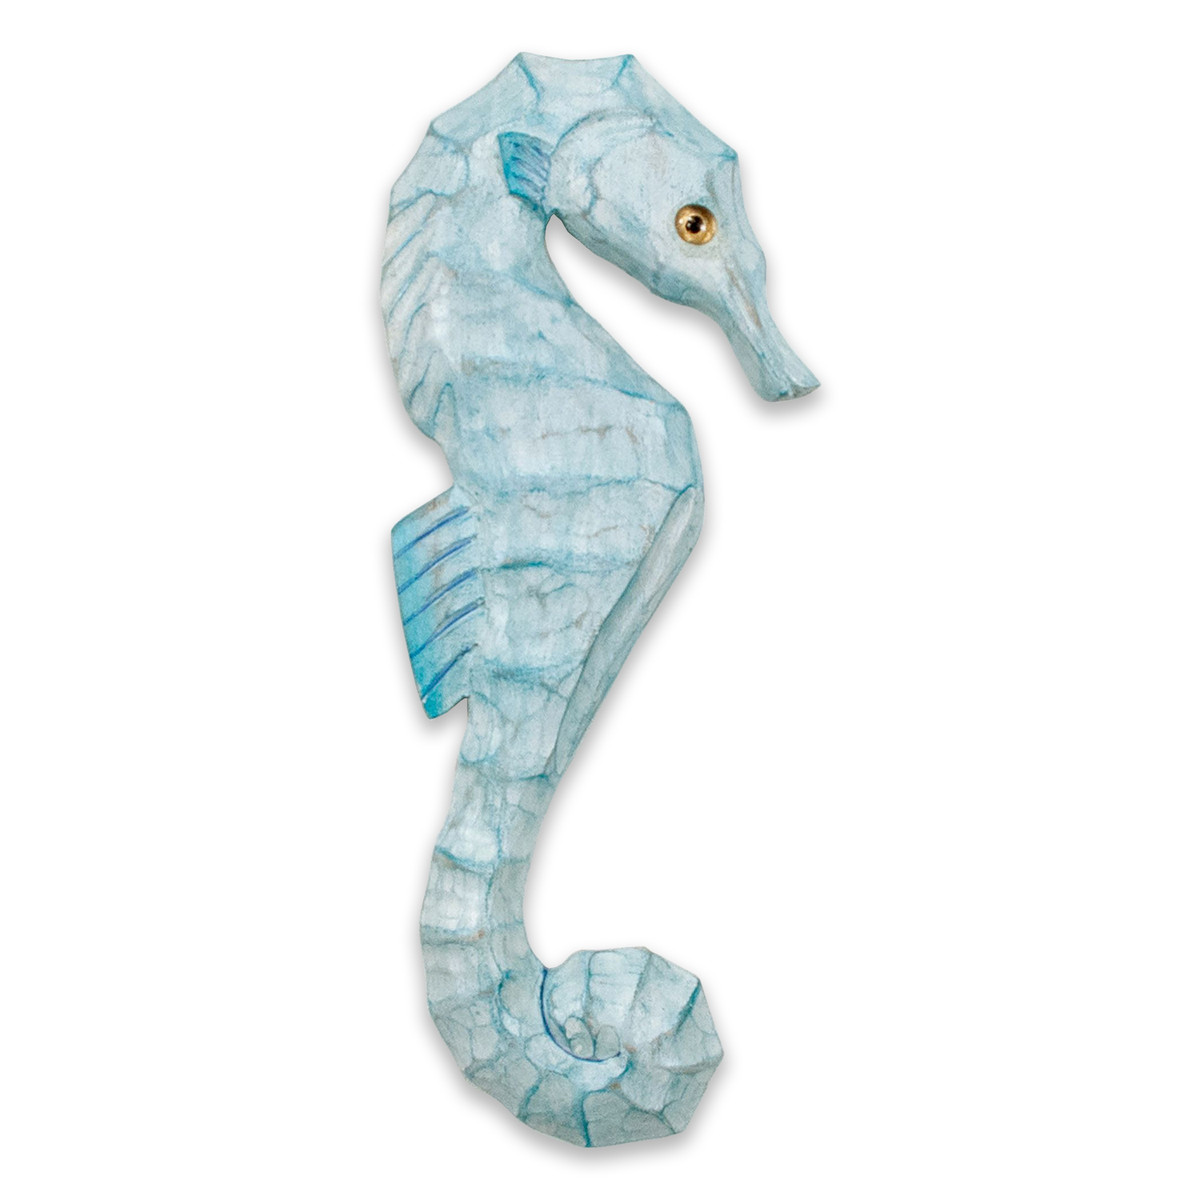 Seahorse Wood Facing Right Wall Sculpture CW118